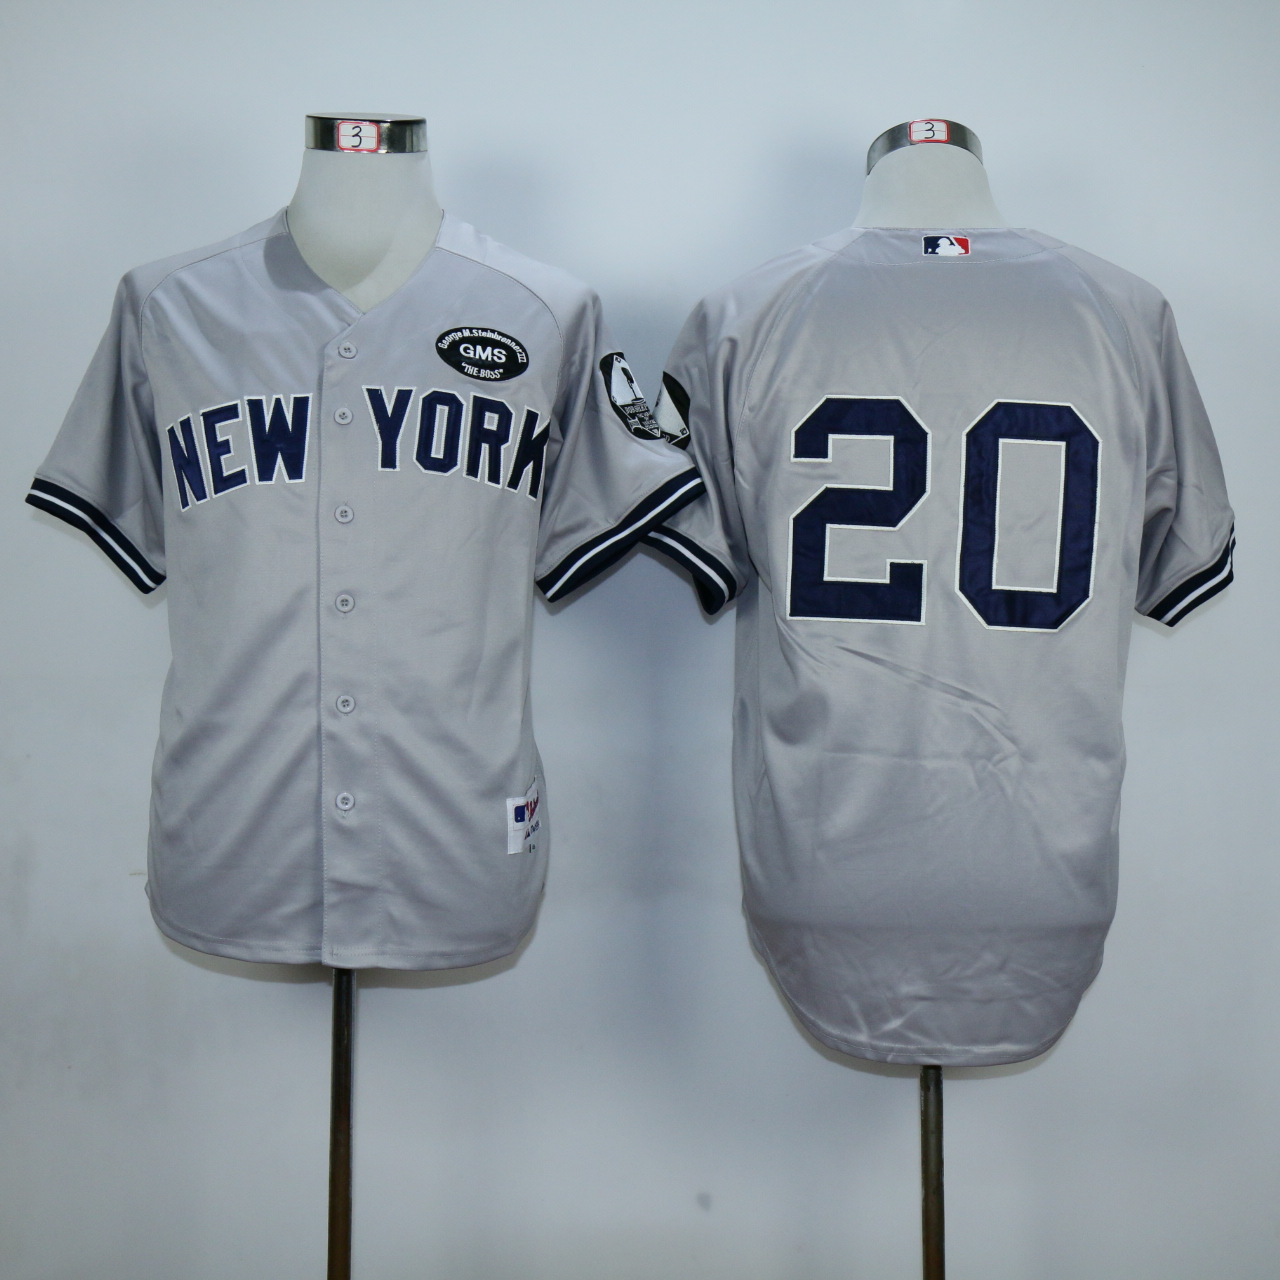 MLB New York Yankees 20 Posada gray Jersey